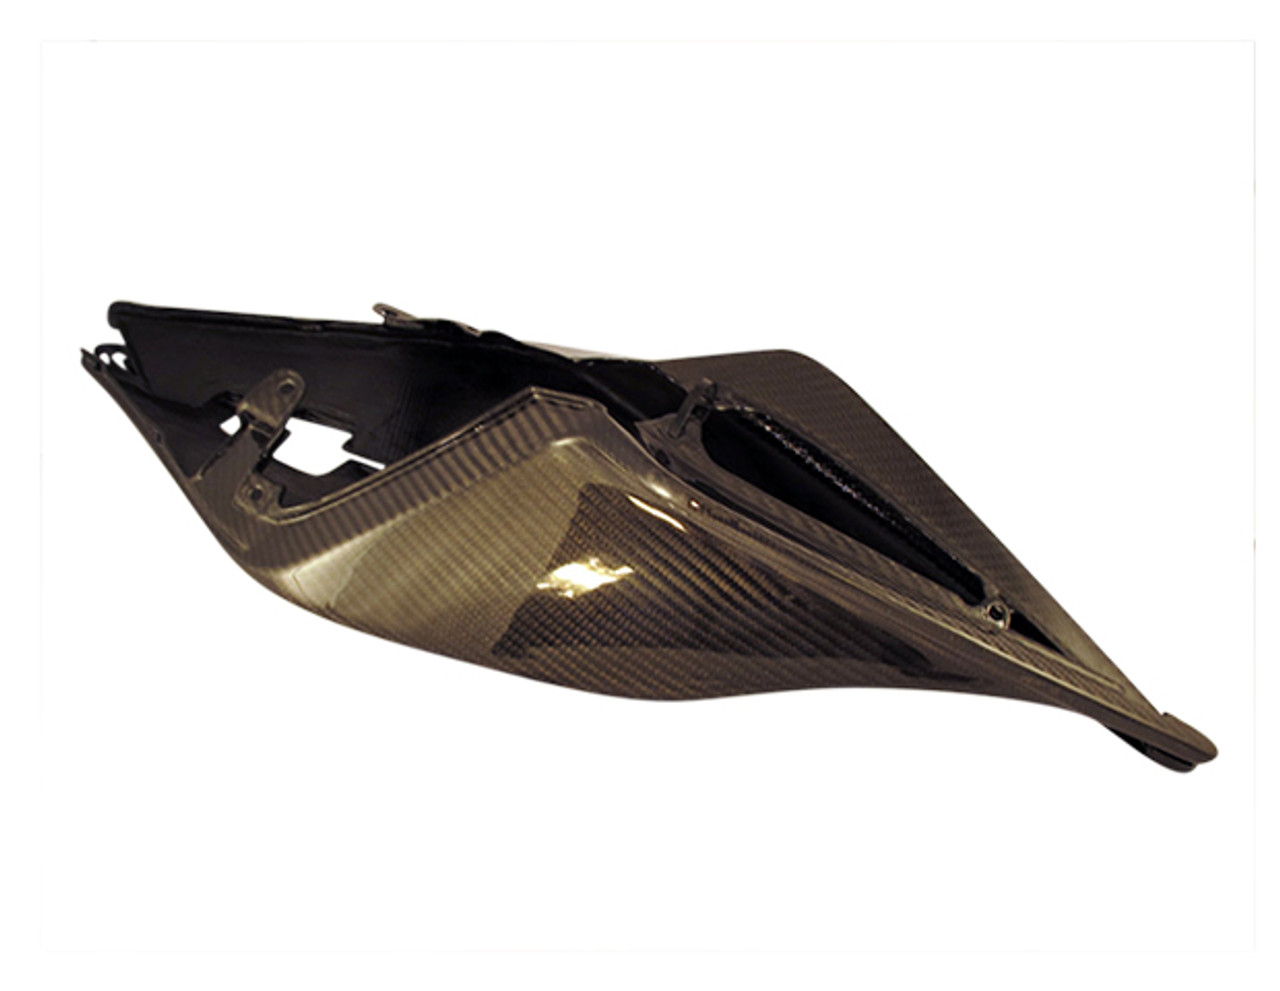 Glossy Twill Weave Carbon Fiber Tail Fairings for Aprilia RSV4 2009+